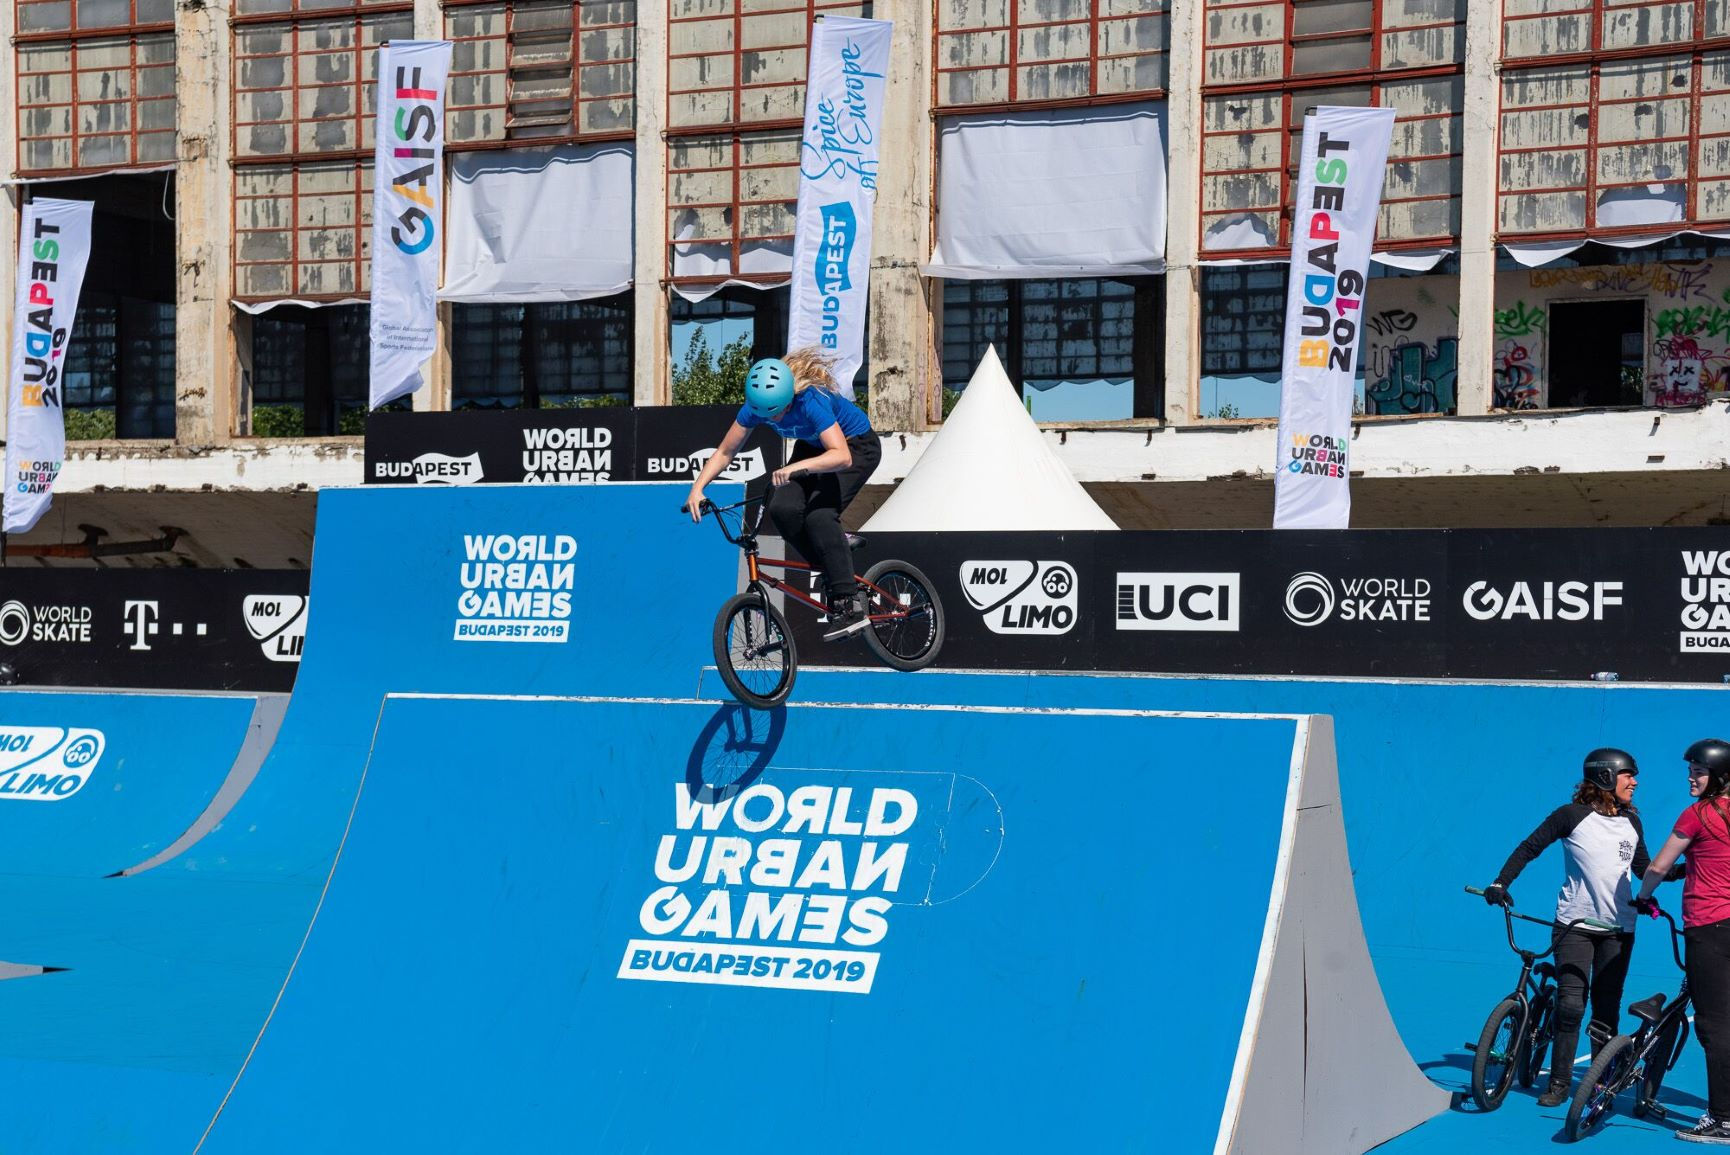 world_urban_games_2019_budapest_6.jpeg